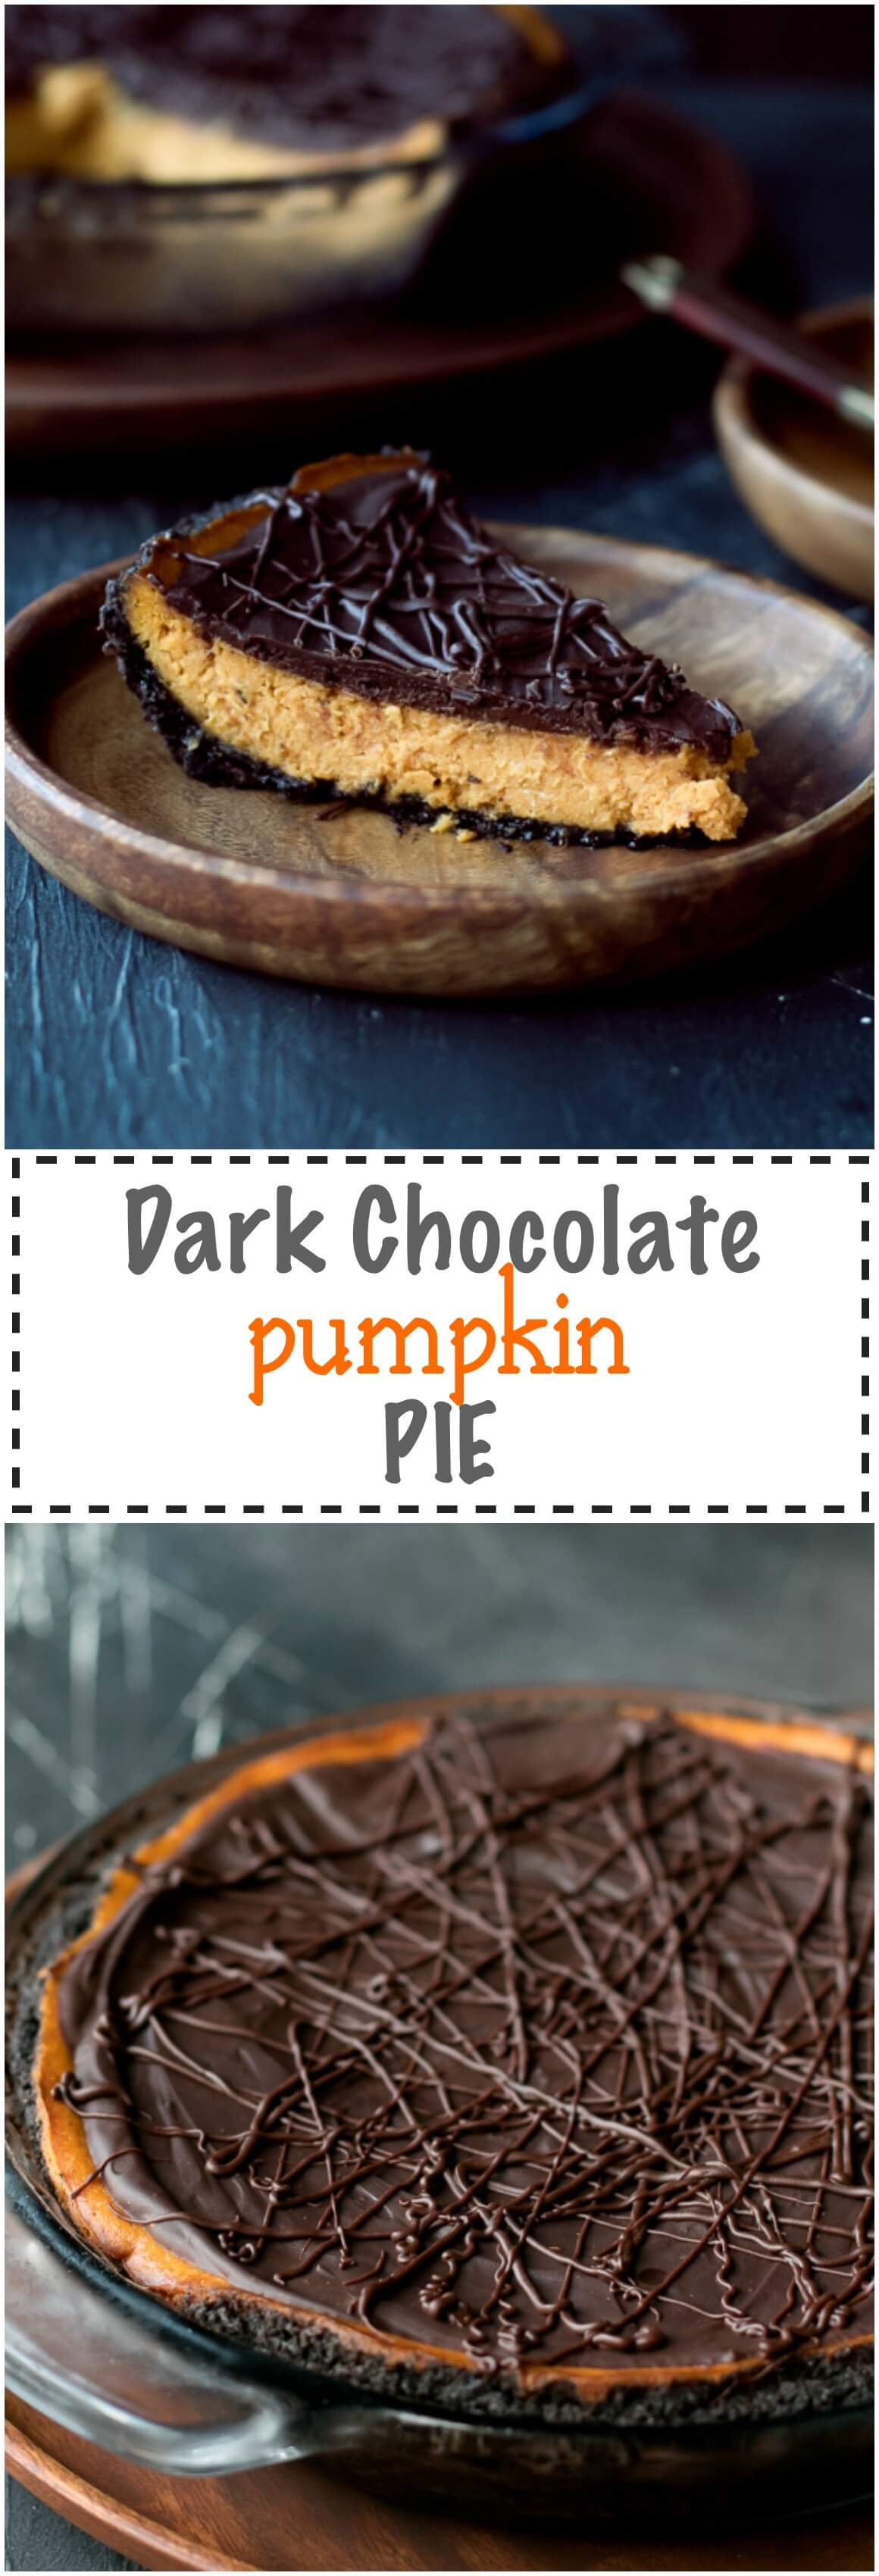 Dark Chocolate Pumpkin Pie With Chocolate Crust Recipe - quick and simple to make, this pumpkin pie has a thin chocolate crust, creamy pumpkin filling and a layer of dark chocolate ganache glaze on top. Seasoned with pumpkin pie spice and made with International Delight® Pumpkin Pie Creamer.